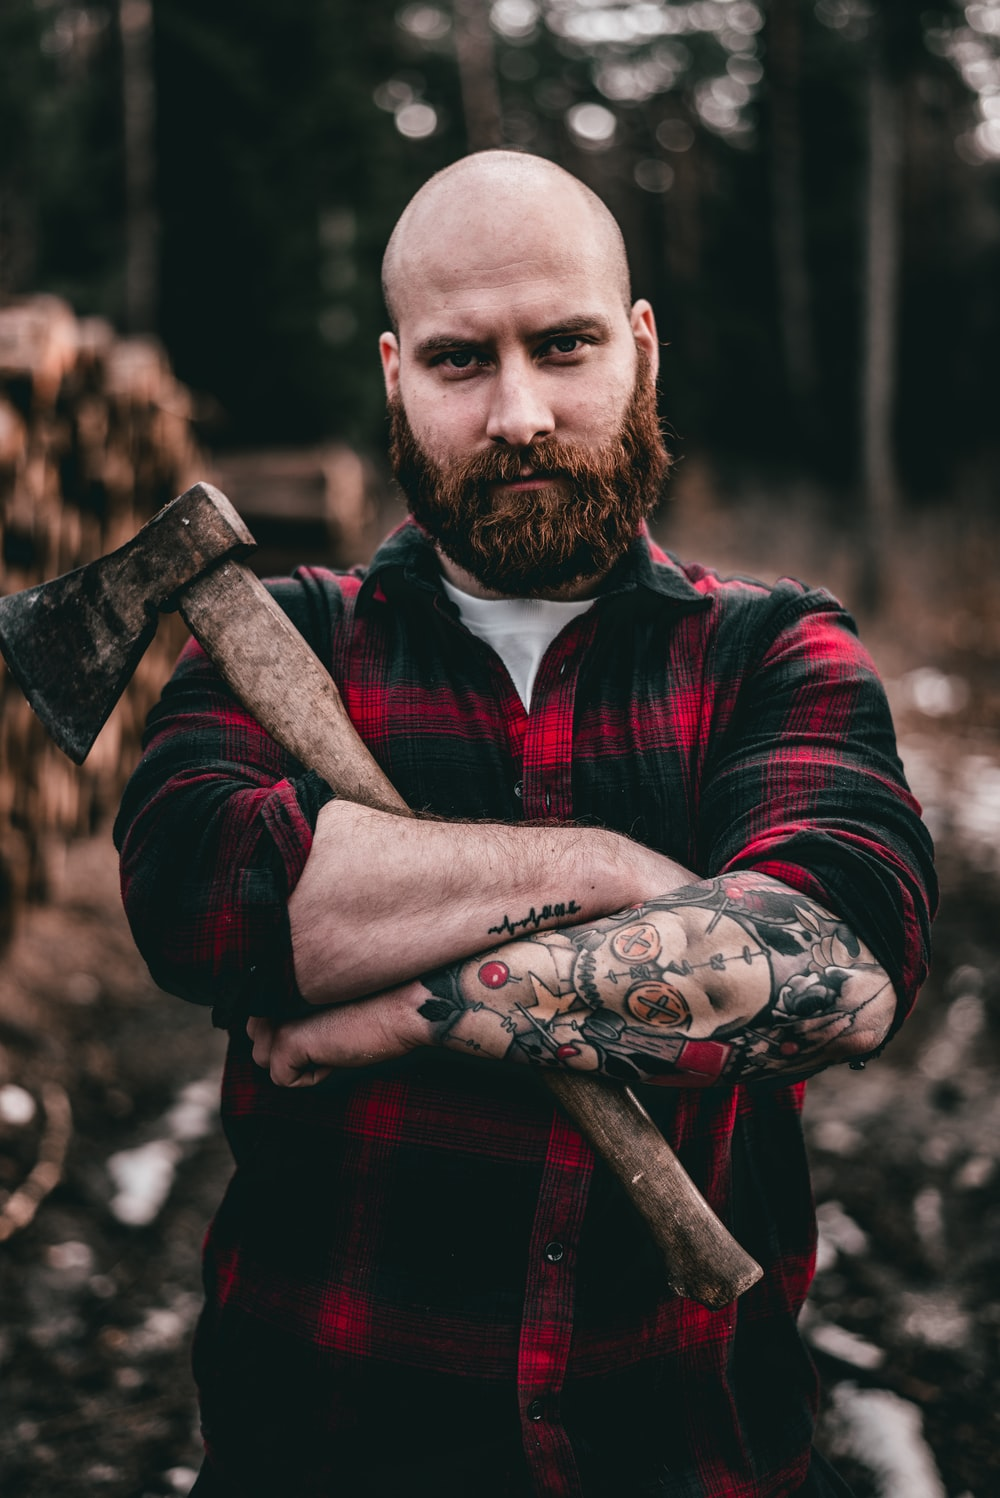 man in red and black plaid dress shirt holding brown wooden stick